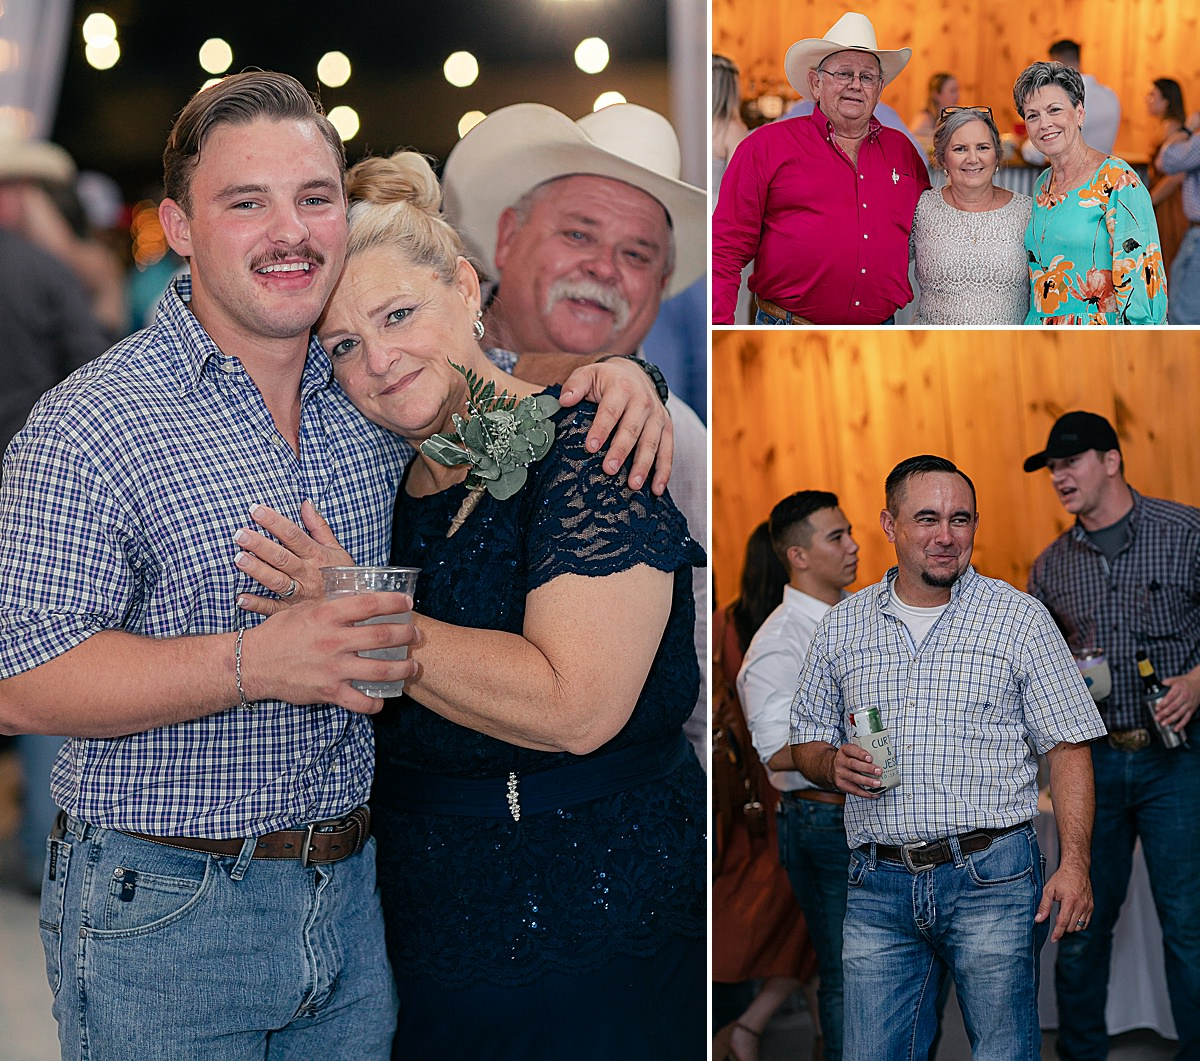 Rustic-Texas-Wedding-Hollow-Creek-Ranch-Carly-Barton-Photography_0030.jpg